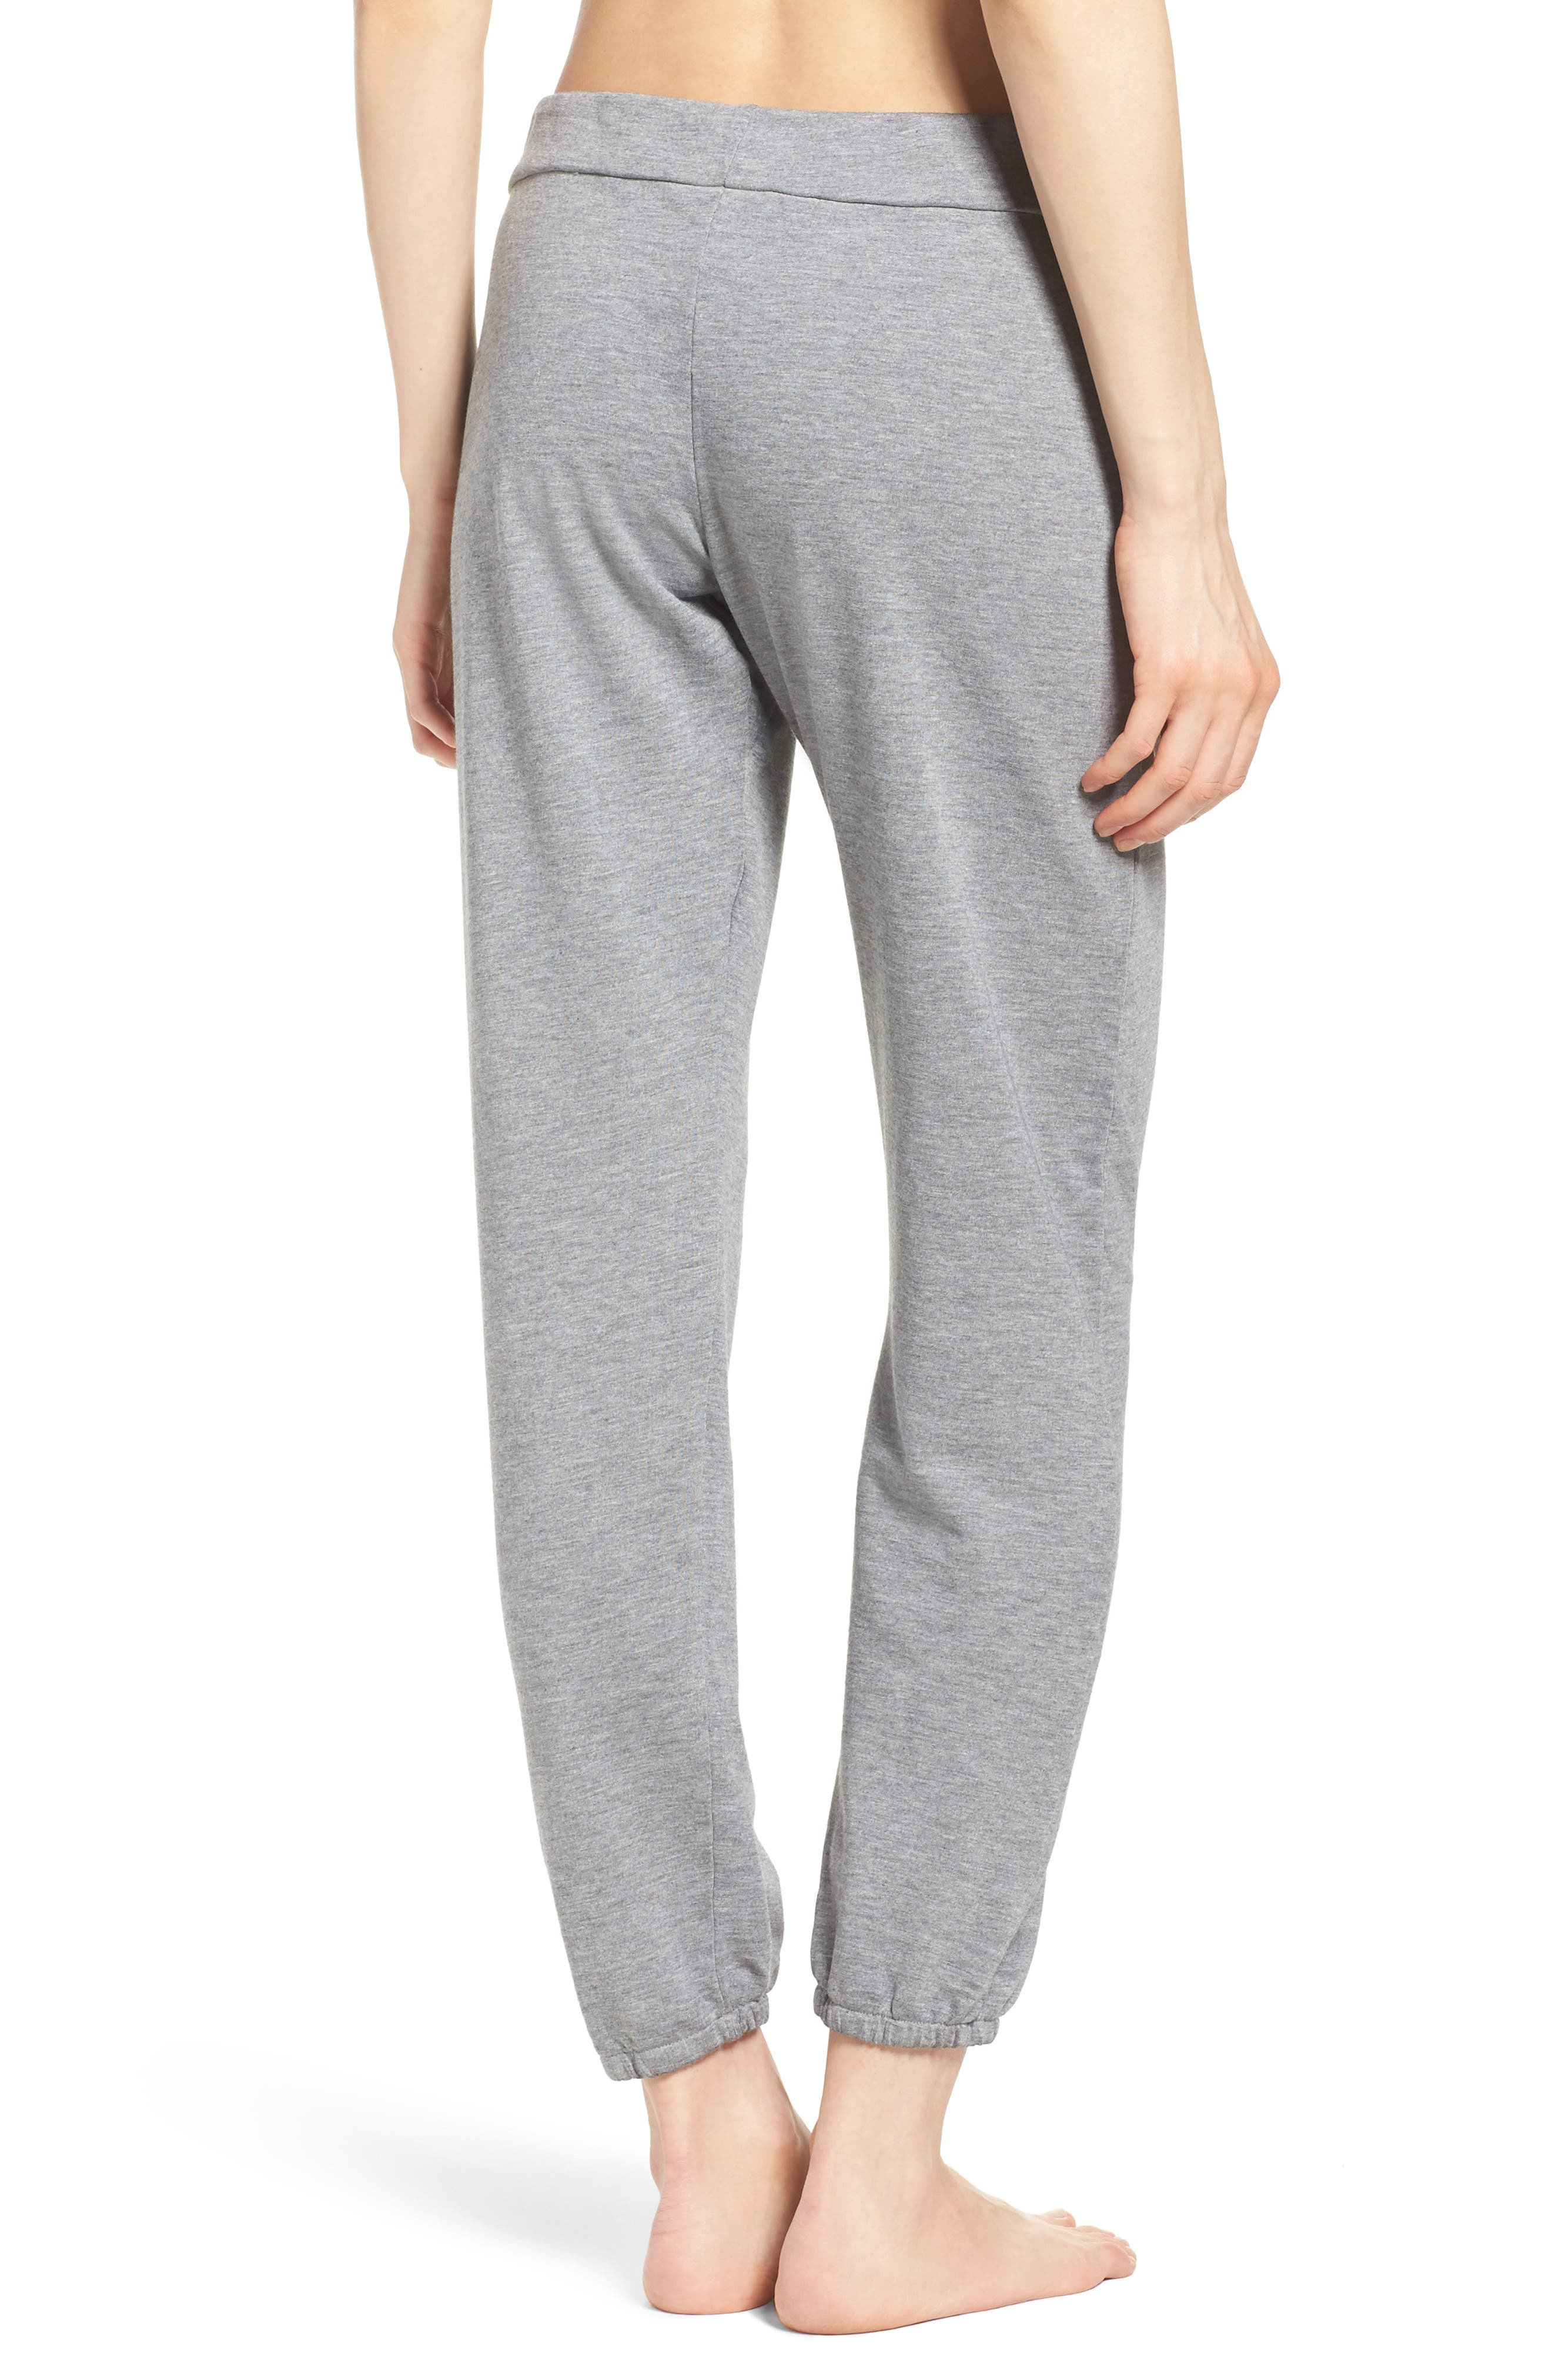 Alternate Image 2  - Honeydew Intimates French Terry Lounge Pants (Nordstrom Exclusive)